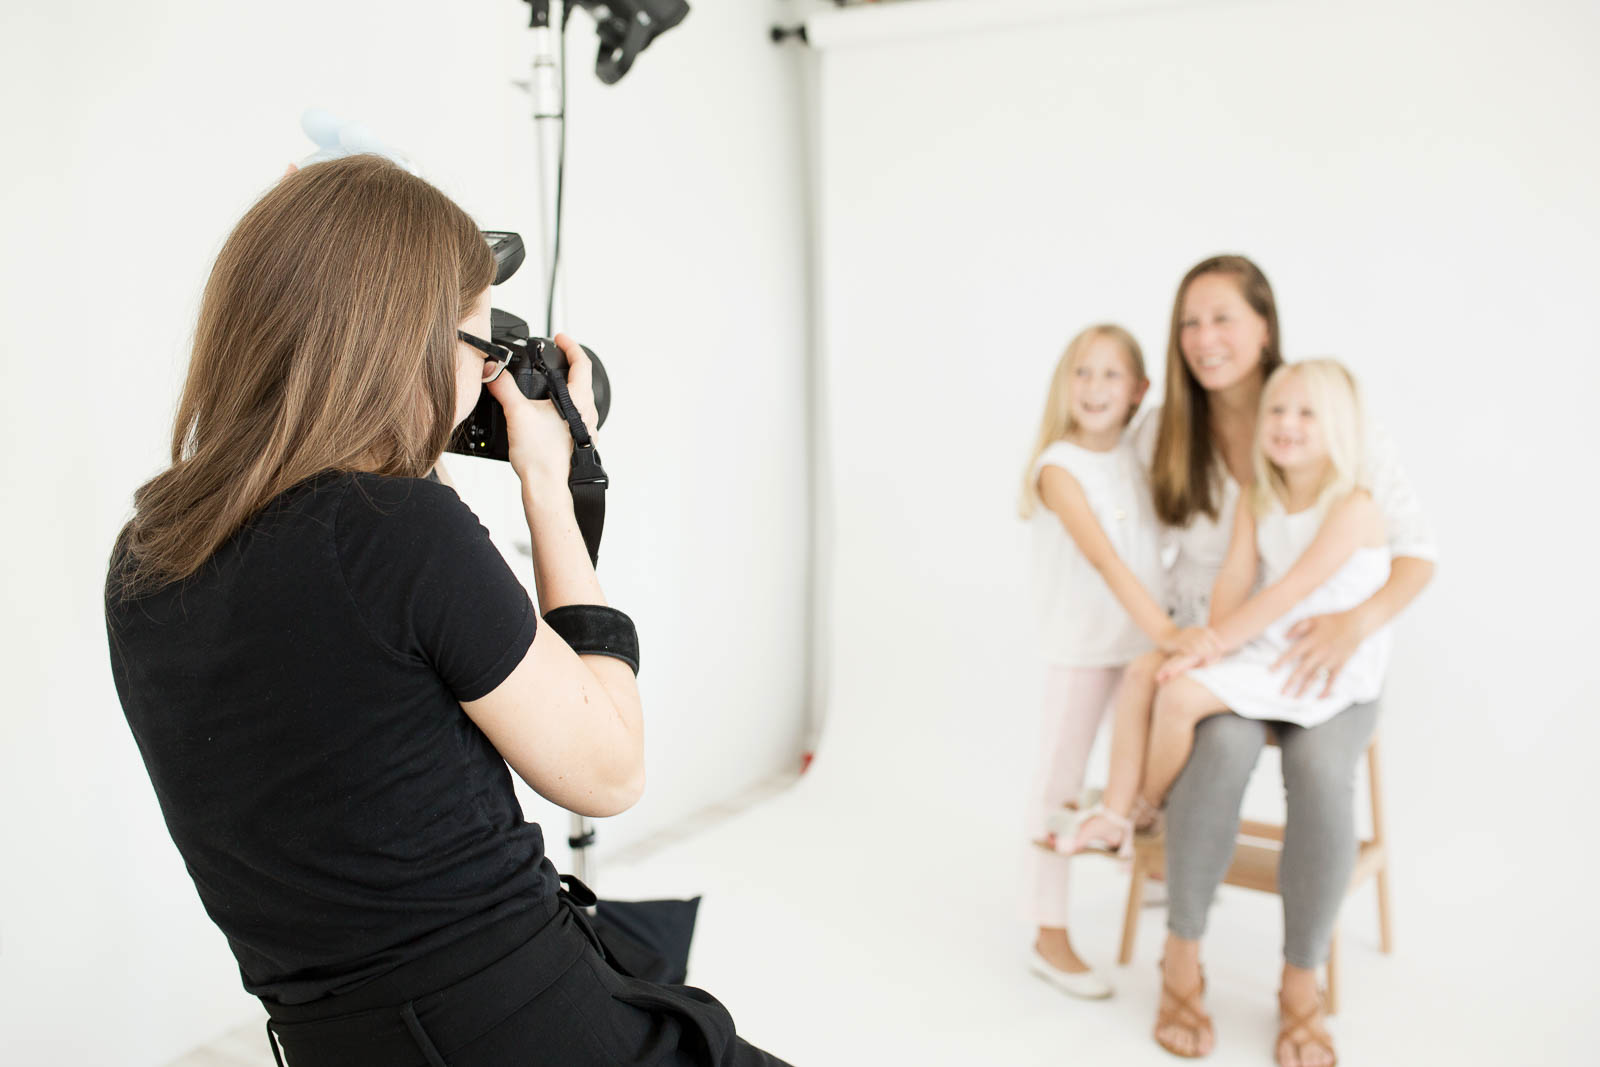 Family photographer taking pictures of a mother and her two girls in a studio setting. Photo of N. Lalor Photography in Greenwich, Connecticut.